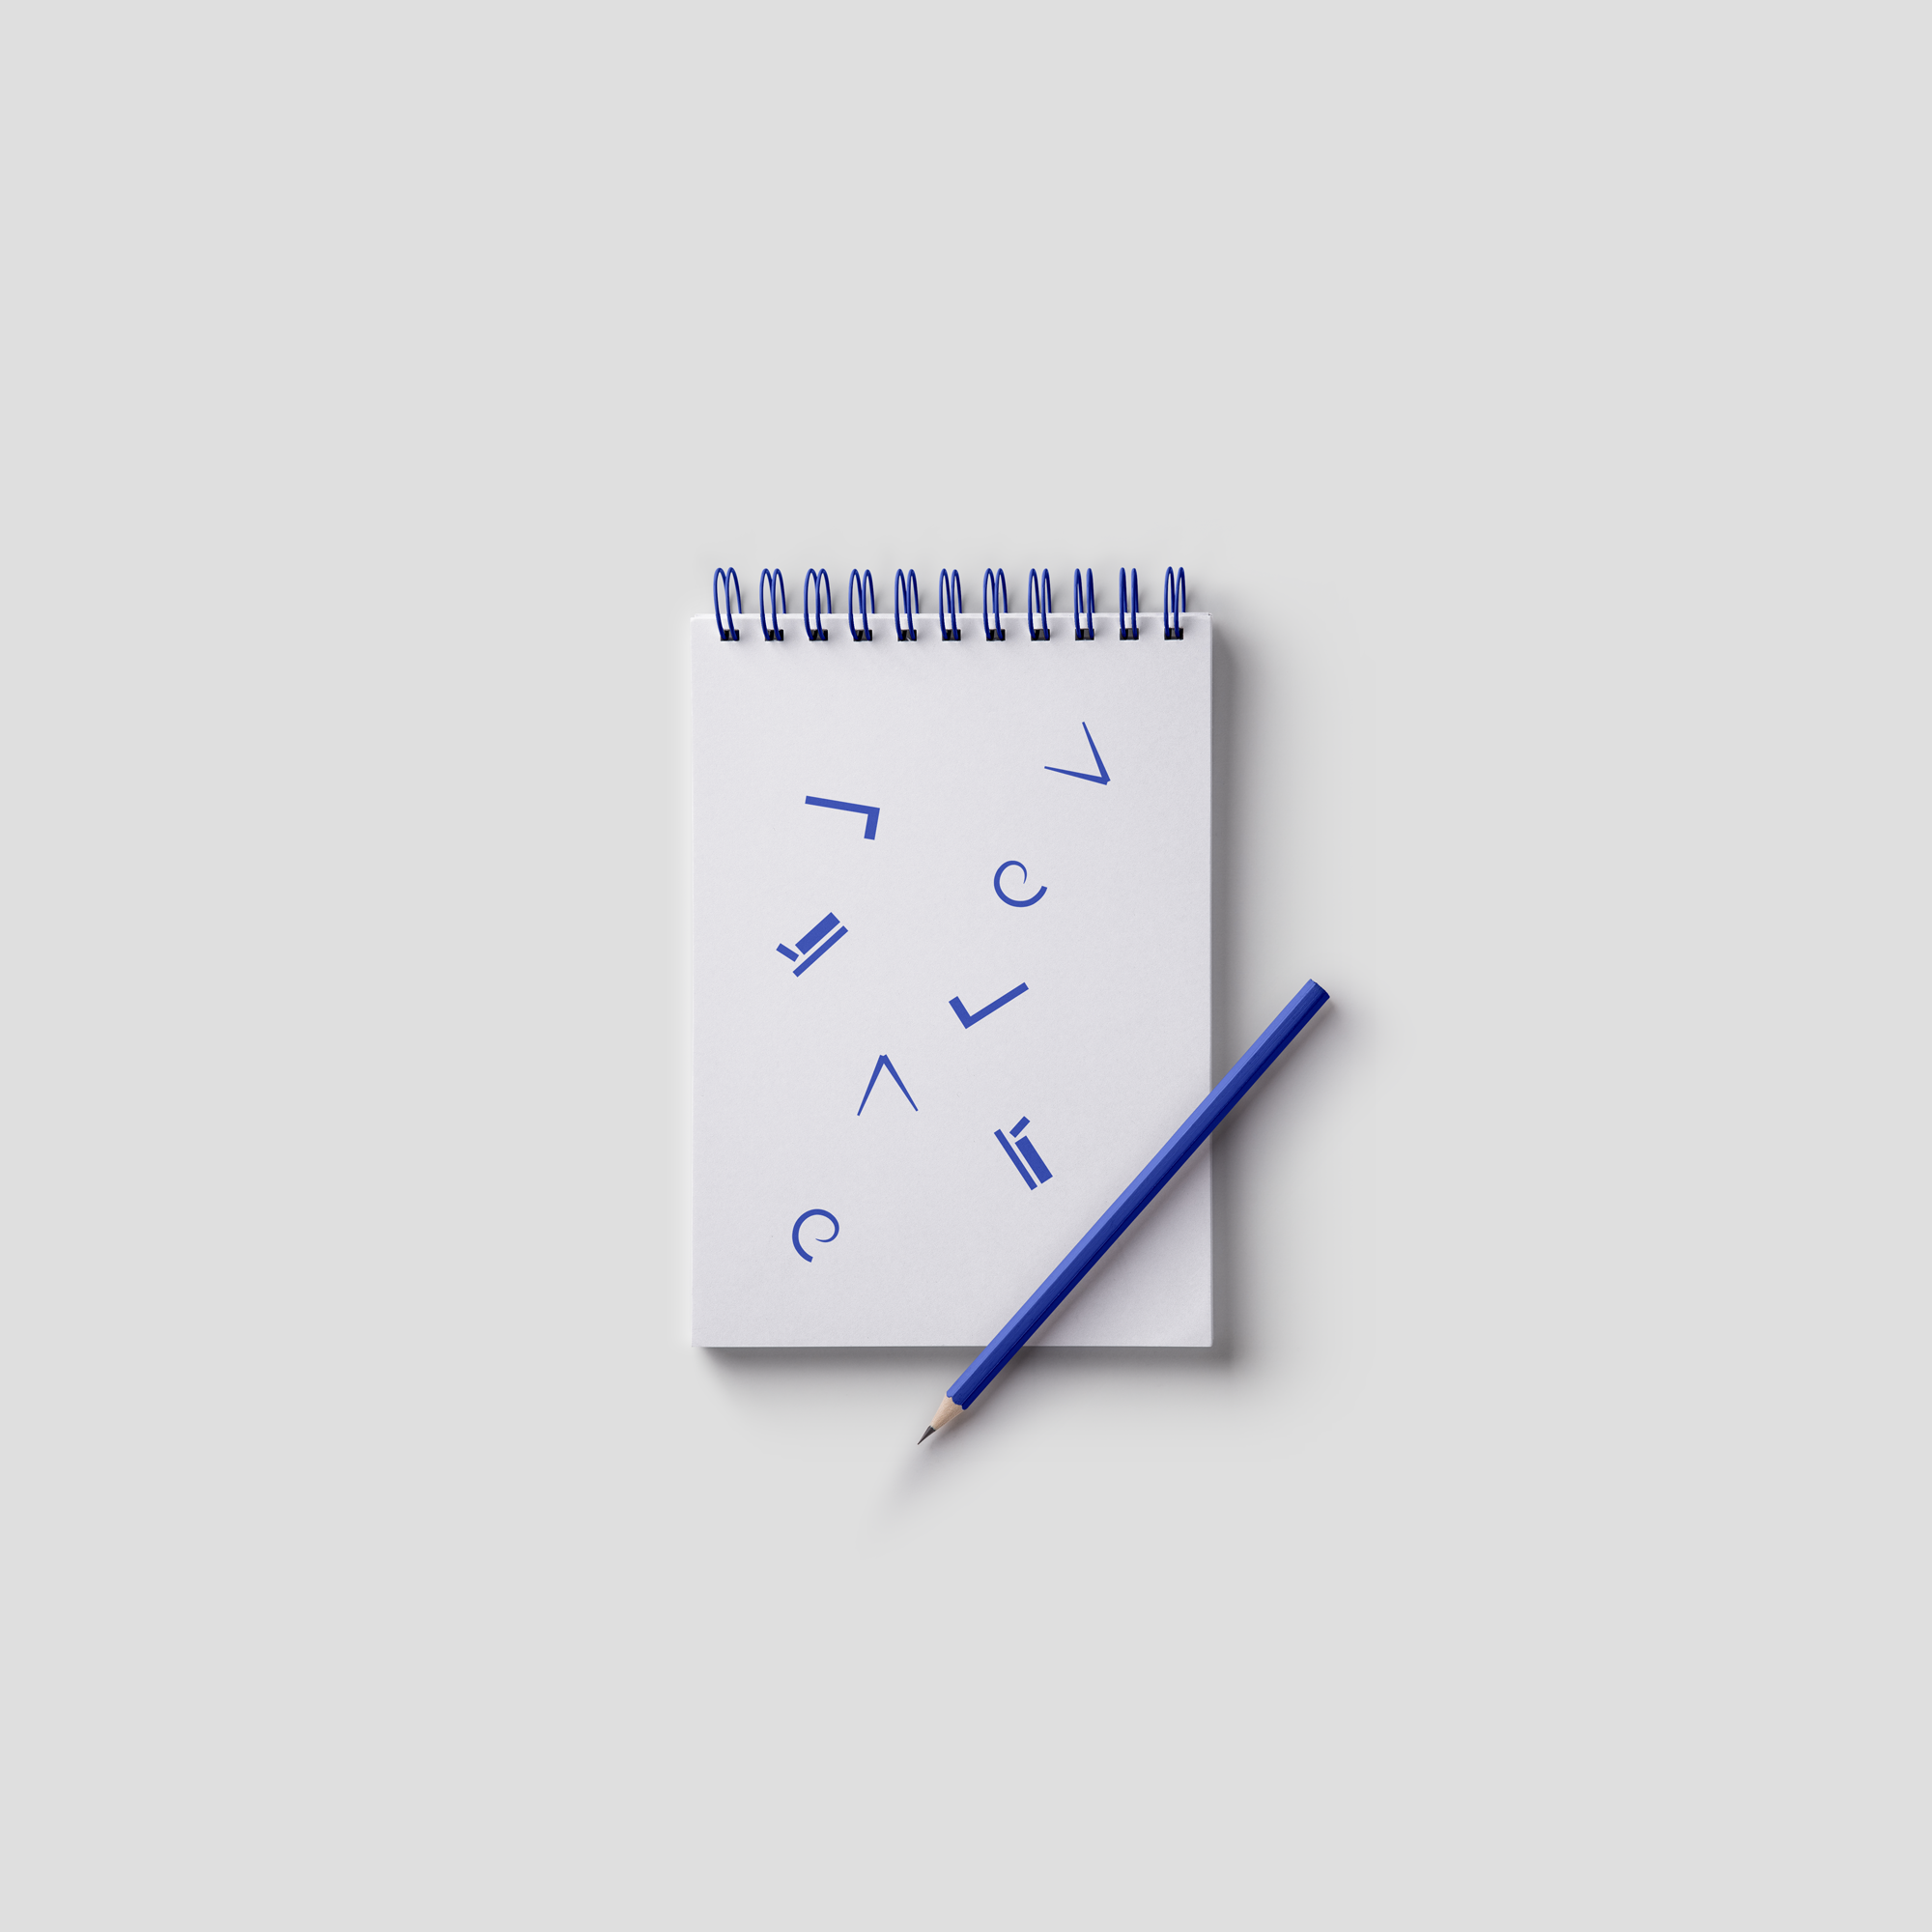 david_ringed_notepaper_02